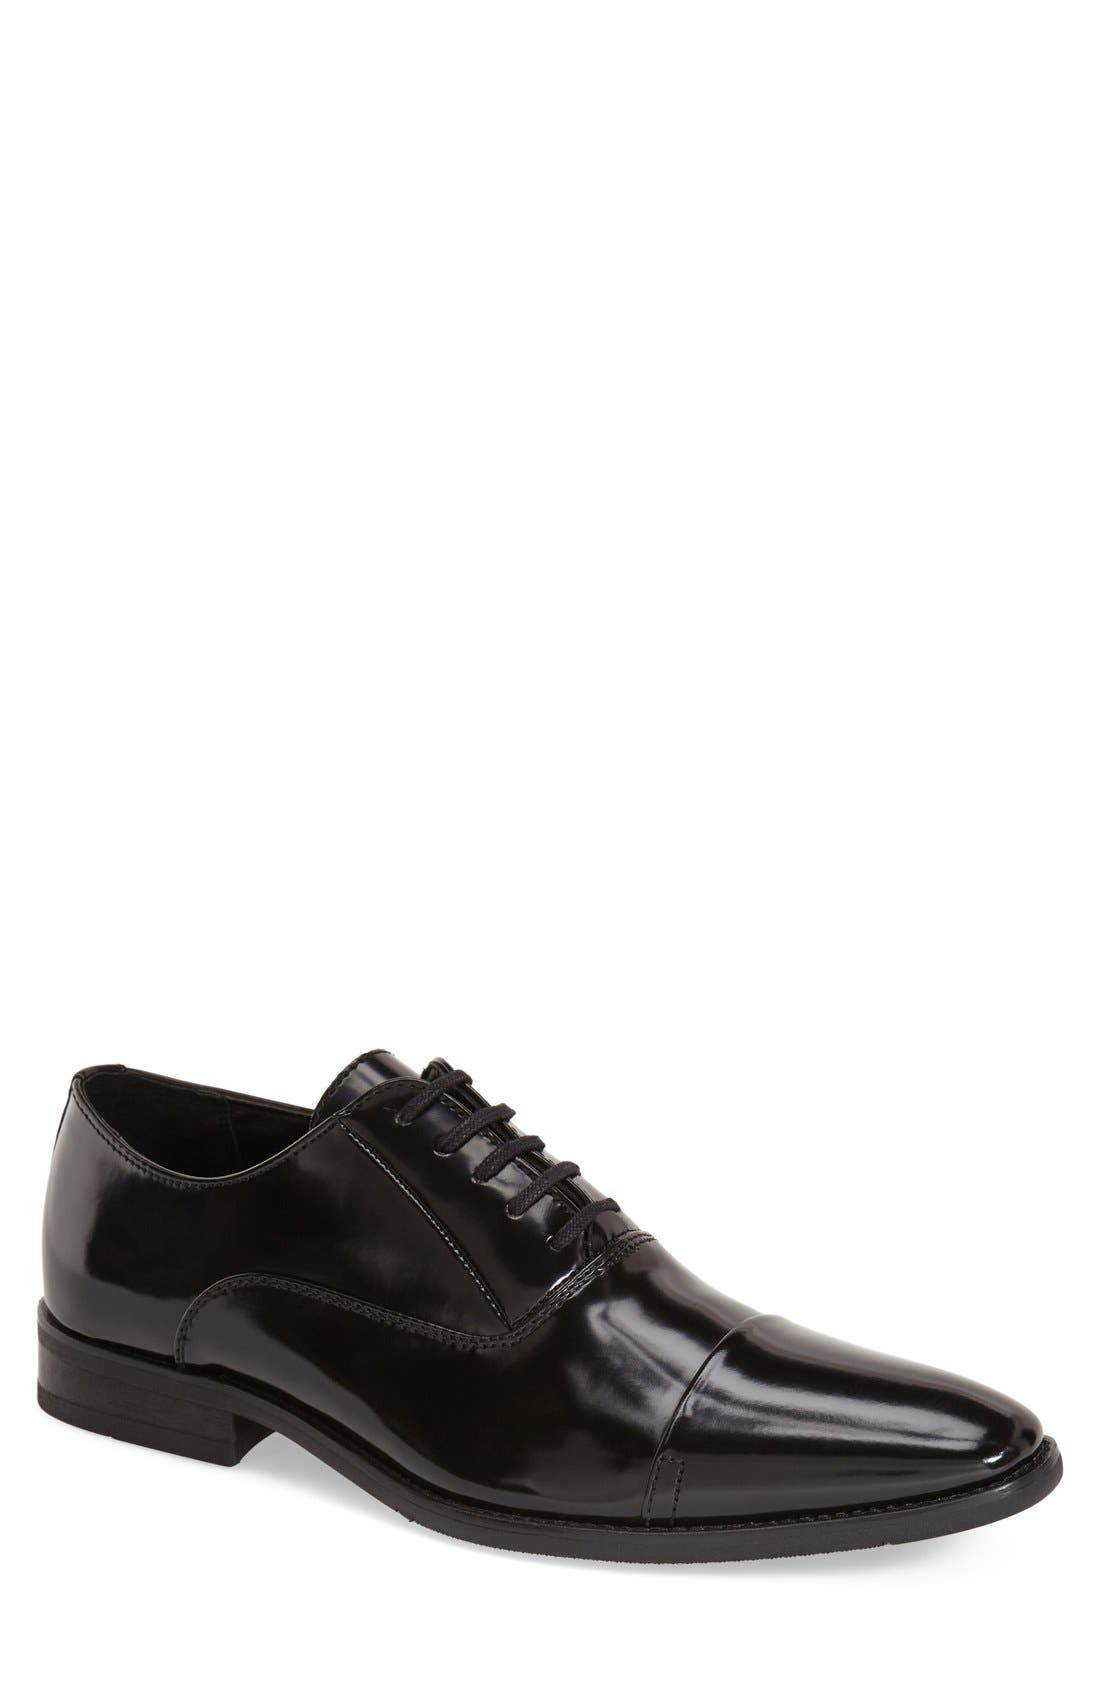 CALVIN KLEIN Radley Box Cap Toe Oxford